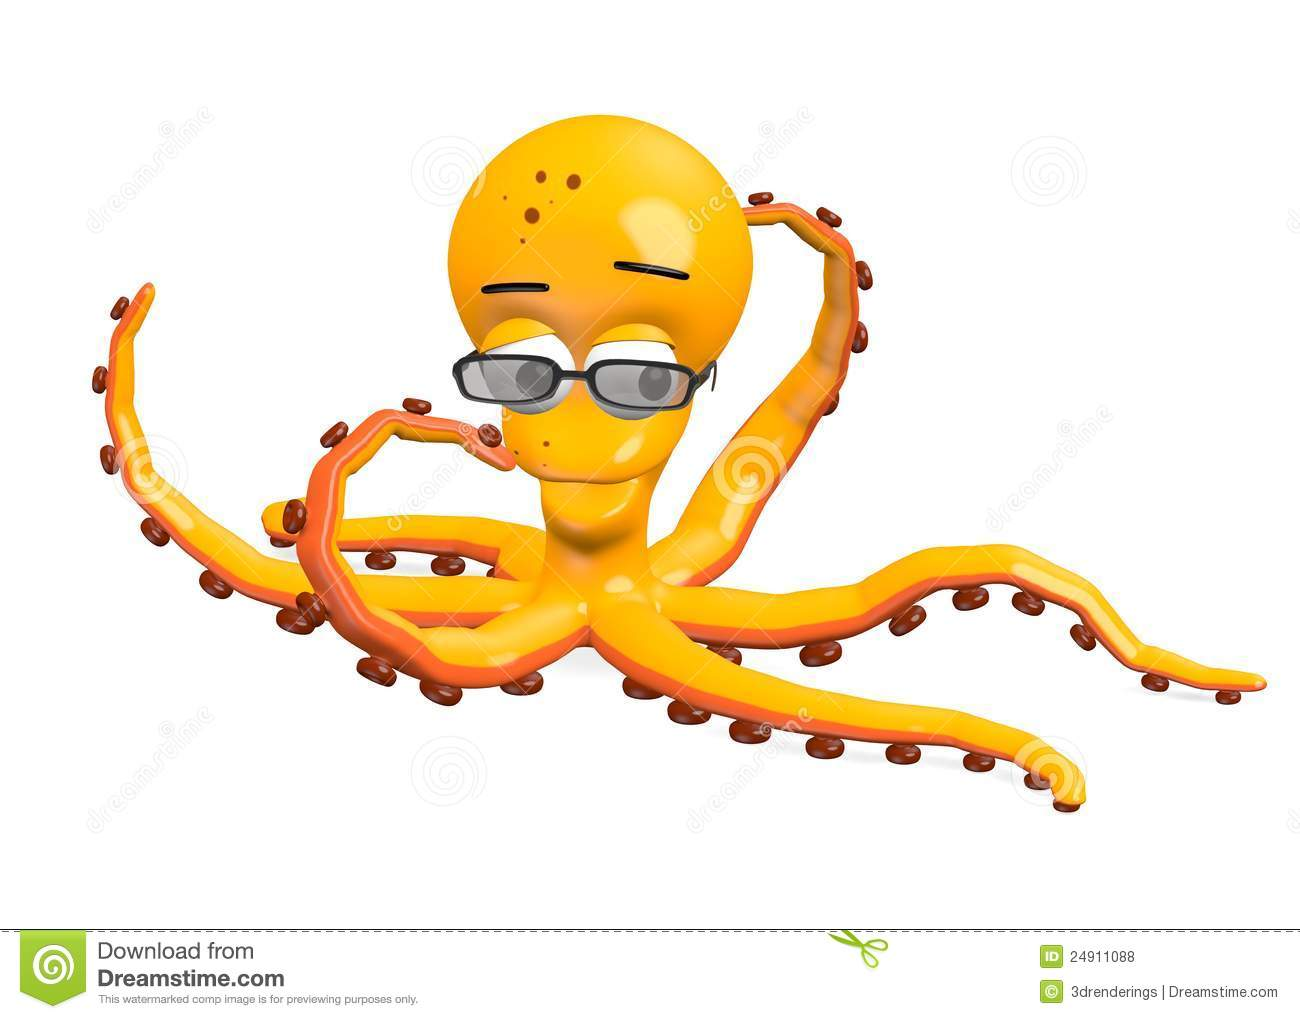 Octopus Glasses Octopus Character With Glasses Royalty Free Stock Photos